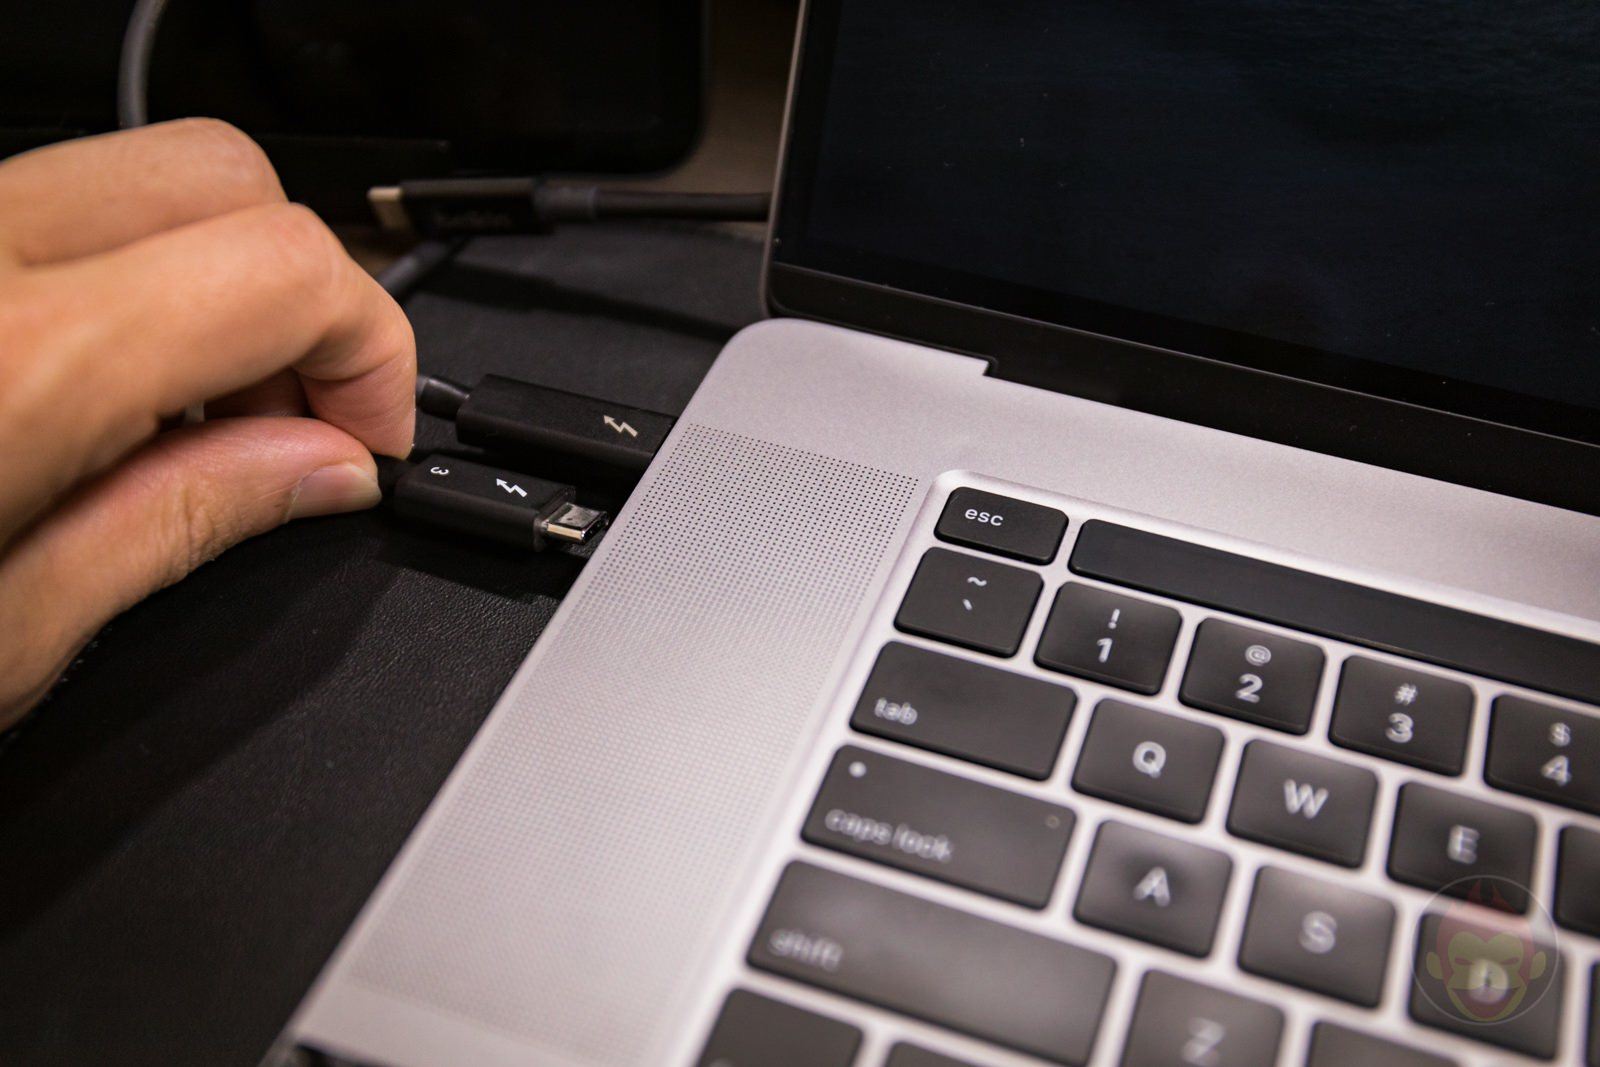 using-ipads-for-multidisplay-support-03.jpg